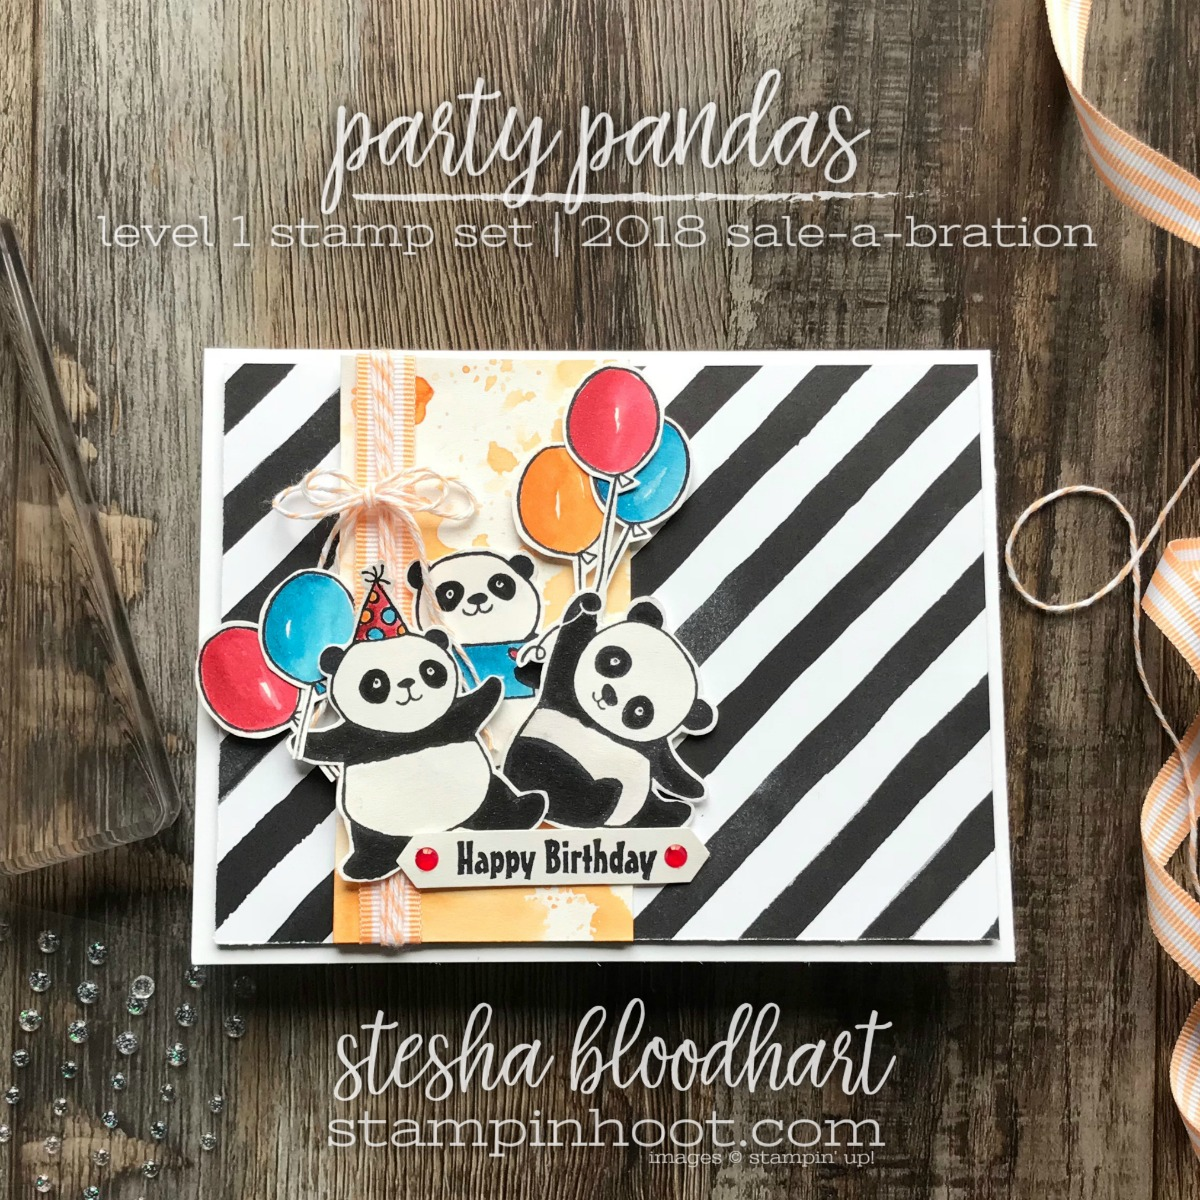 Party Pandas Level 1 Sale-A-Bration Stamp Set by Stampin' Up! Birthday Card created by Stesha Bloodhart, Stampin' Hoot! #steshabloodhart #stampinhoot